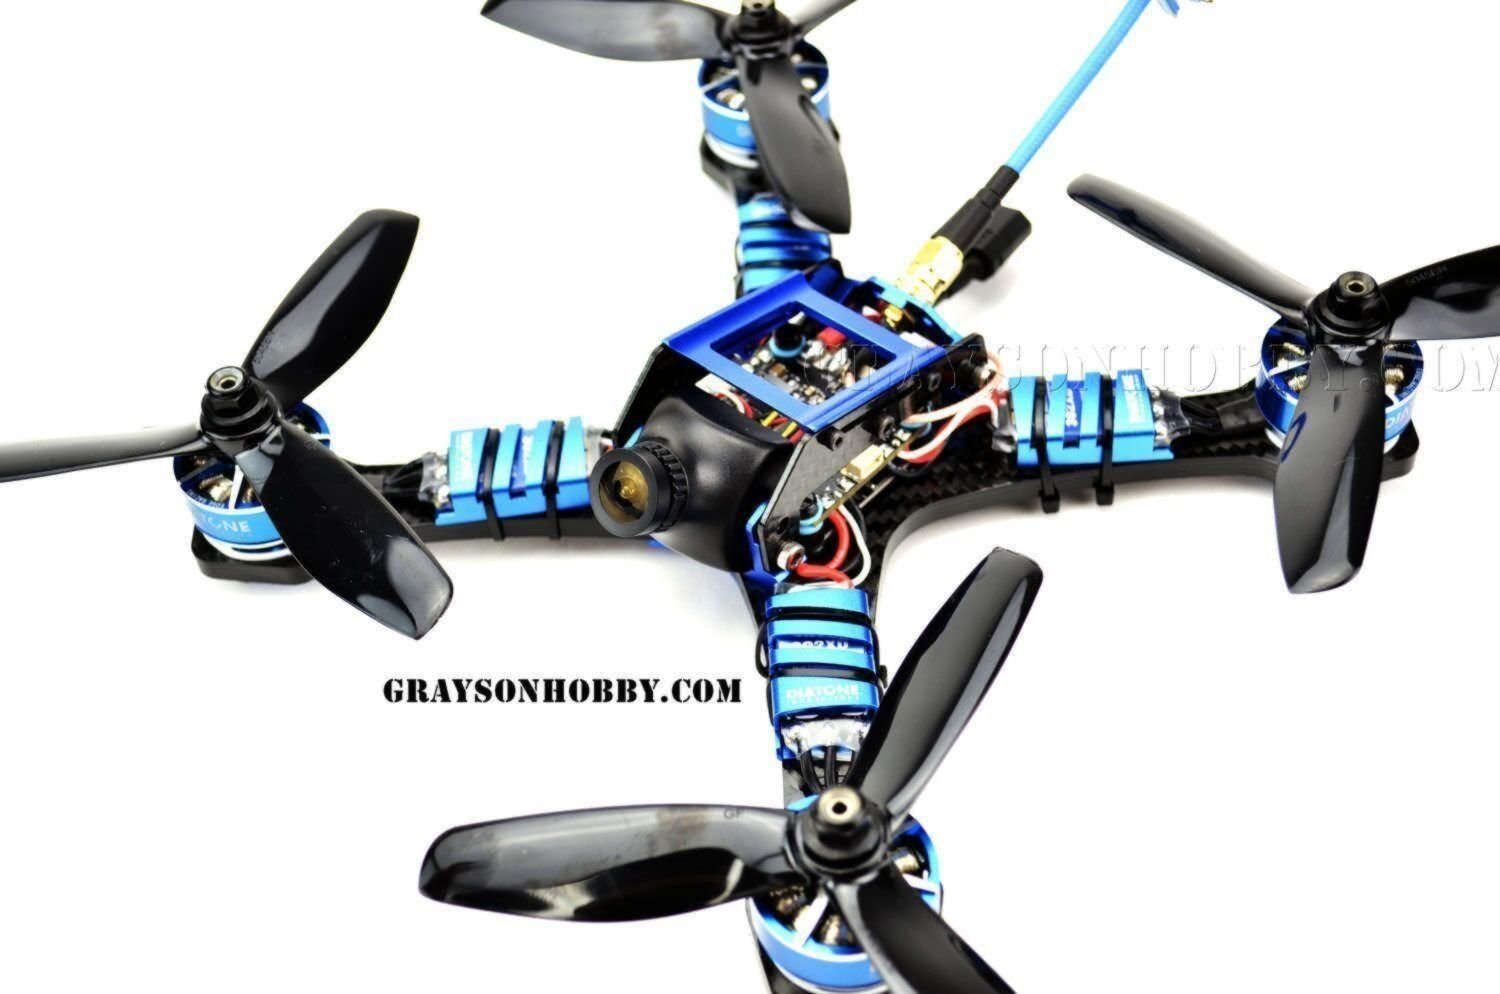 Diatone-GT200N Racing Drone (Blue)